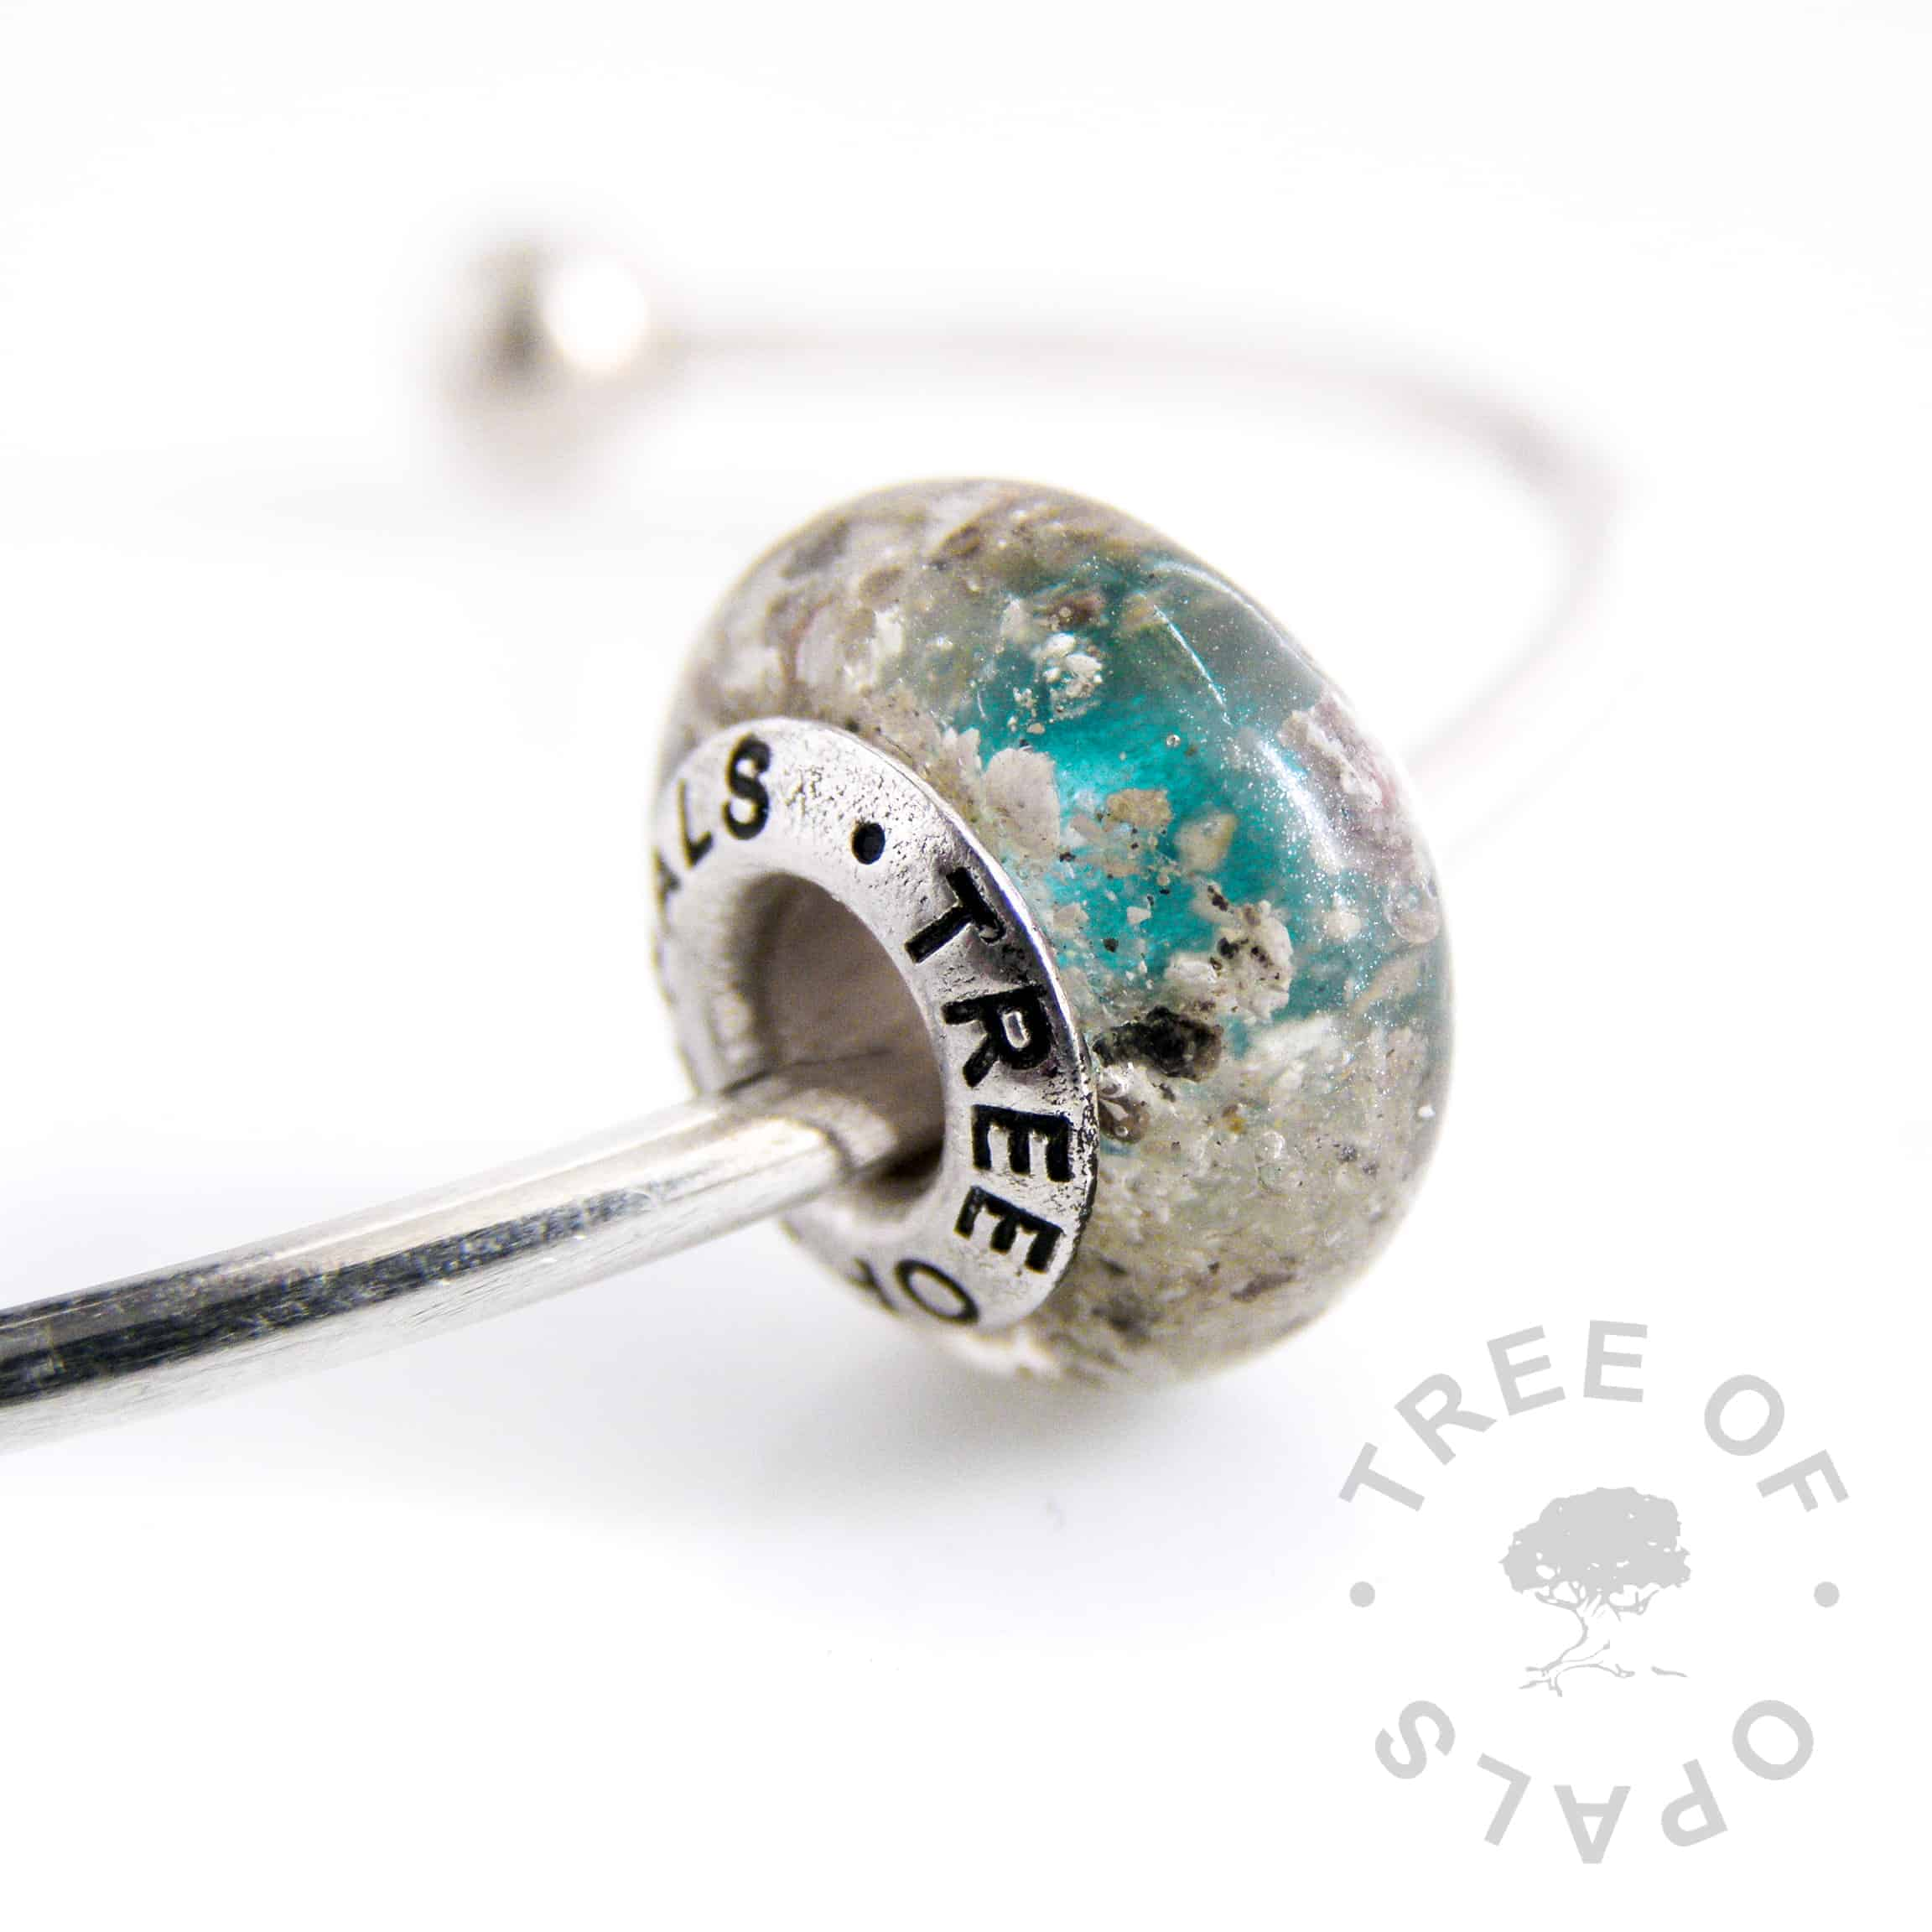 cremation ash charm teal shimmer painted core